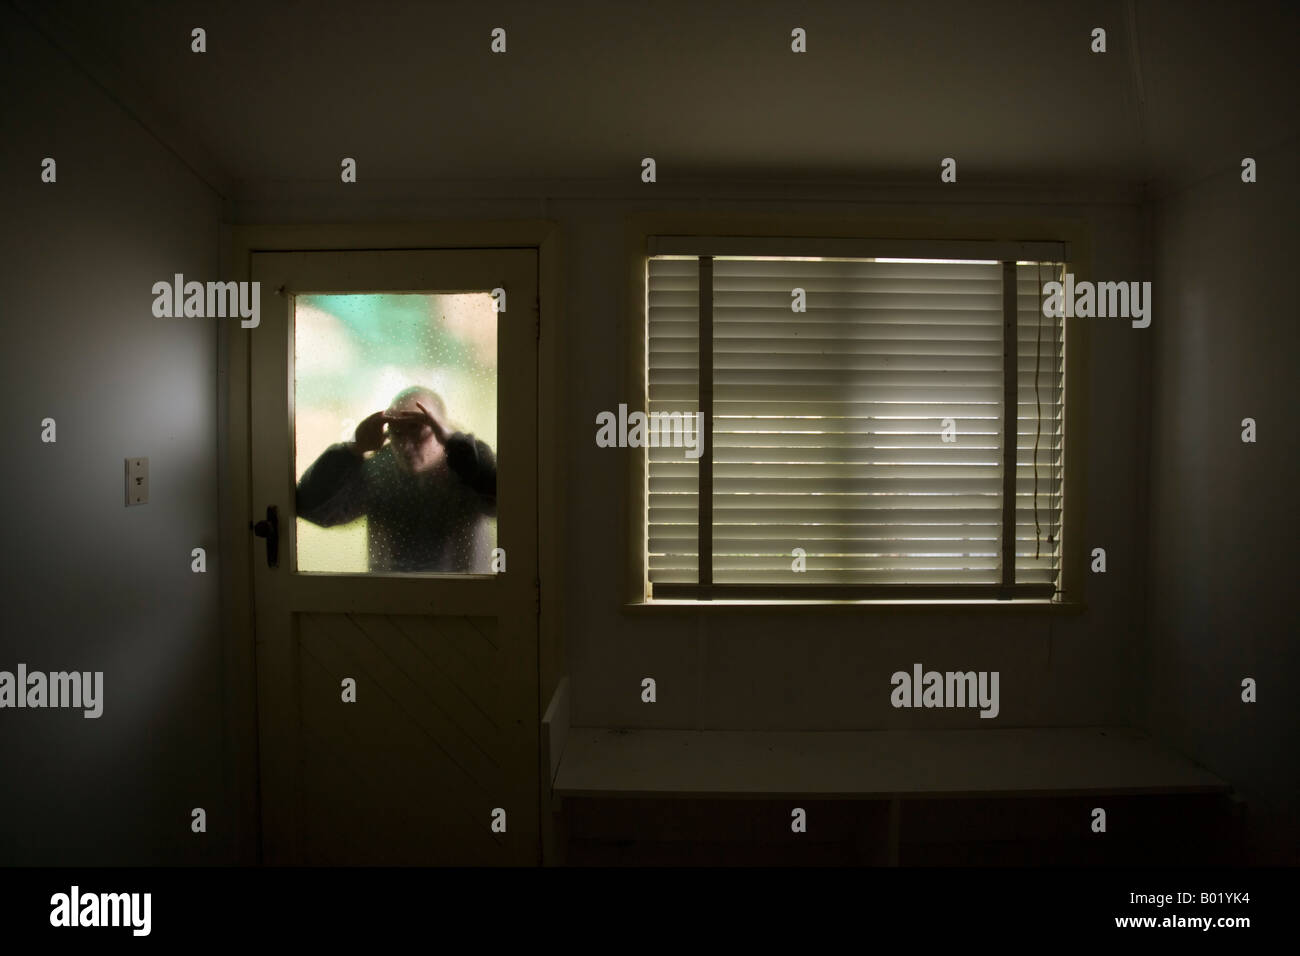 Man looks into room through frosted glass window pane on door beside window with blind - Stock Image